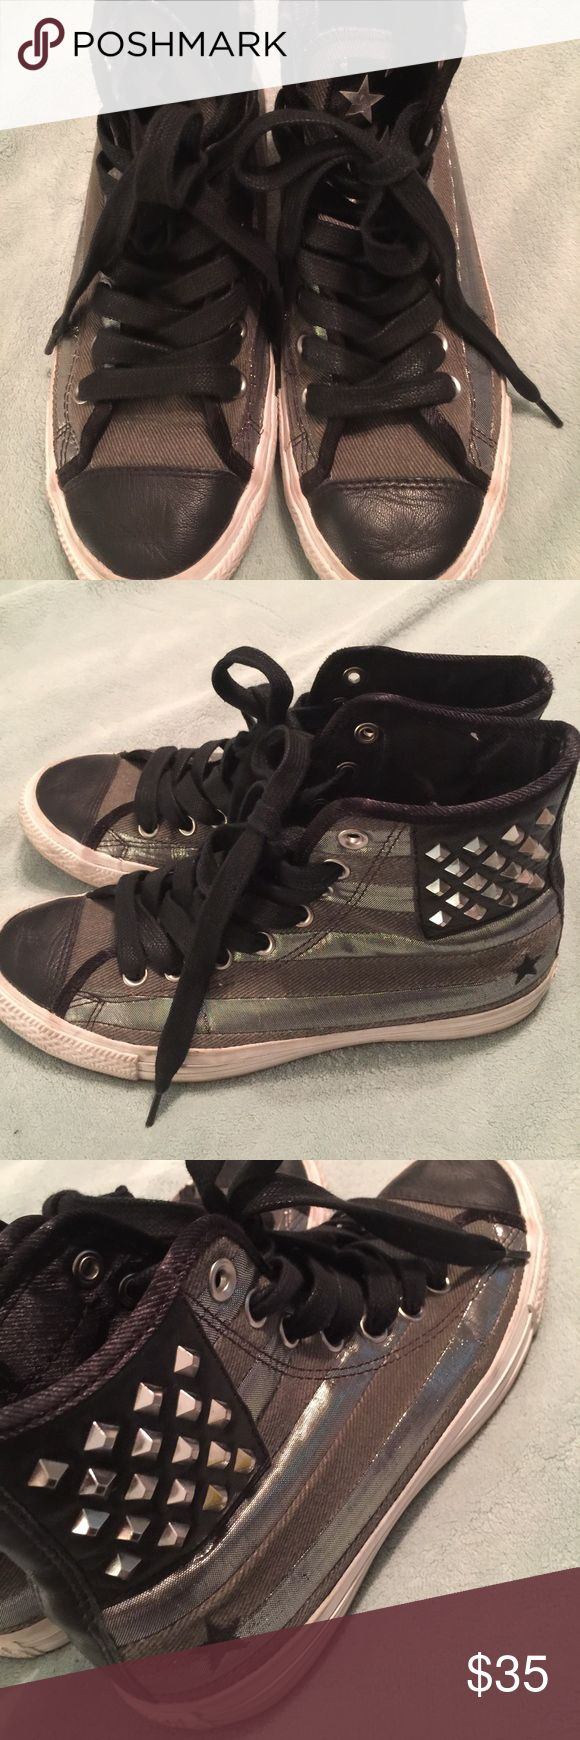 BLACK LEATHER HIGHTOP STUDDED CONVERSE ALL STARS Black leather converse with a gray shimmer along the sides. Shoe has a eye-catching studded design to make them more exciting to wear. Great used condition! Converse Shoes Sneakers